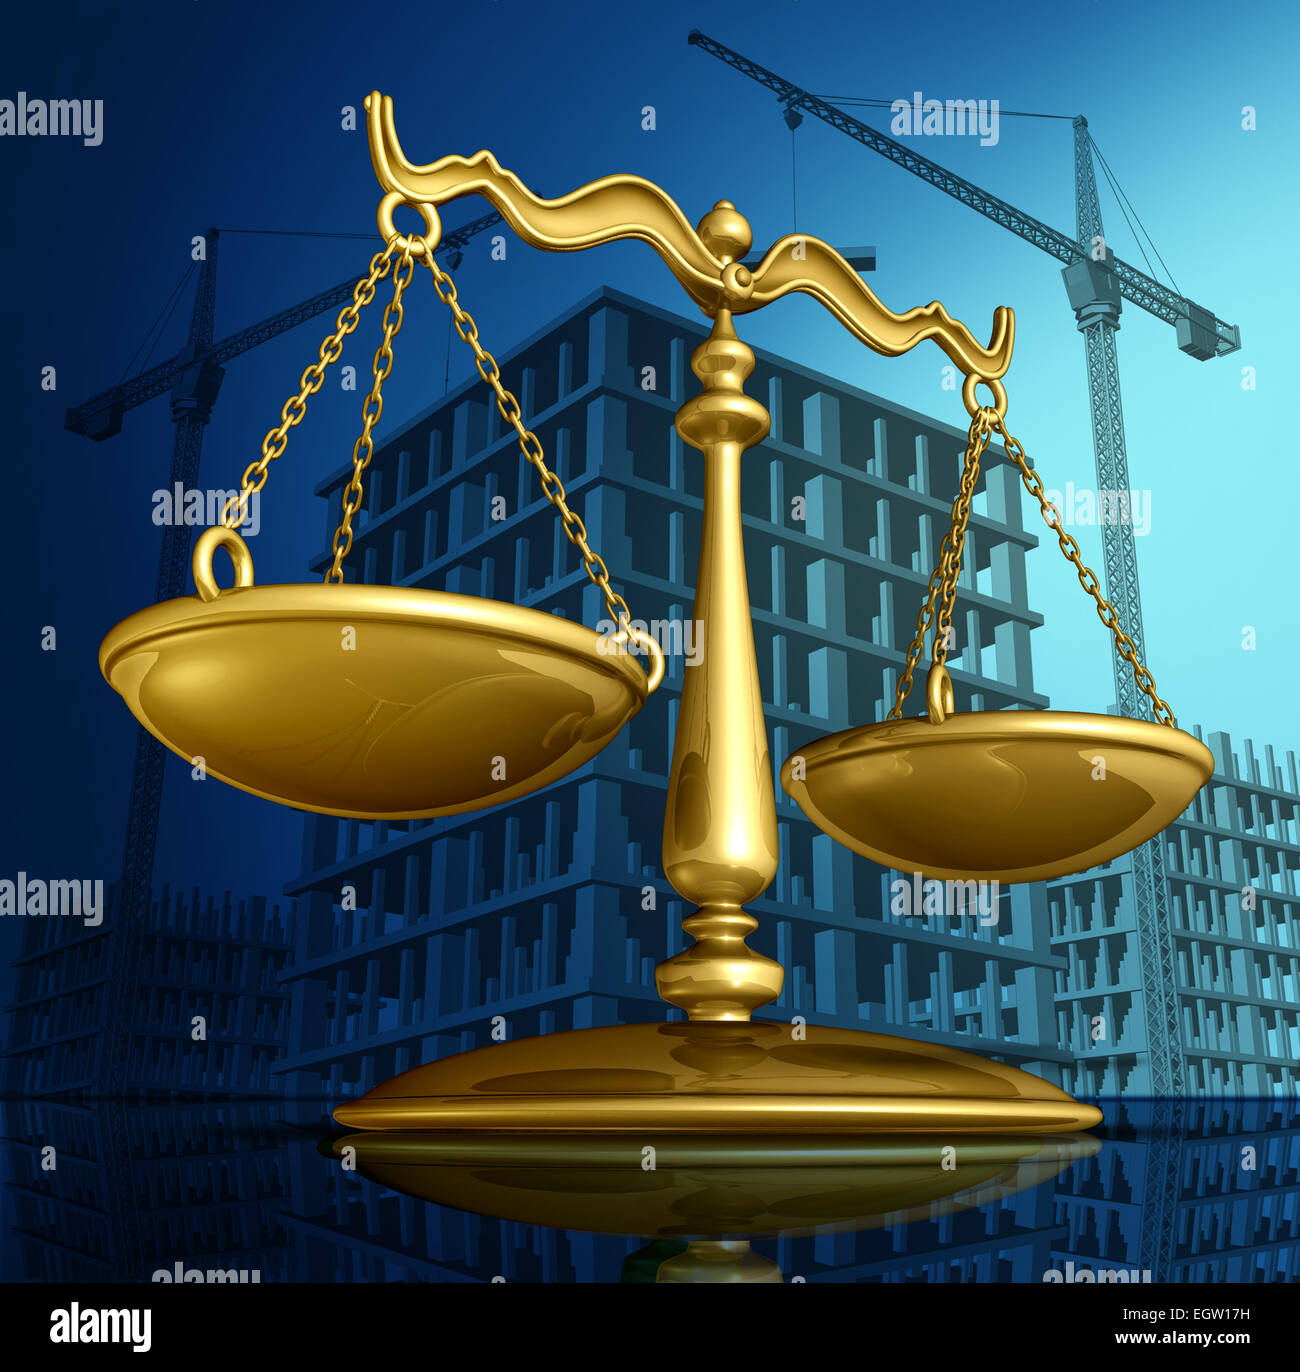 Construction law concept as a justice scale over a working building site with cranes and a structure being built Stock Photo